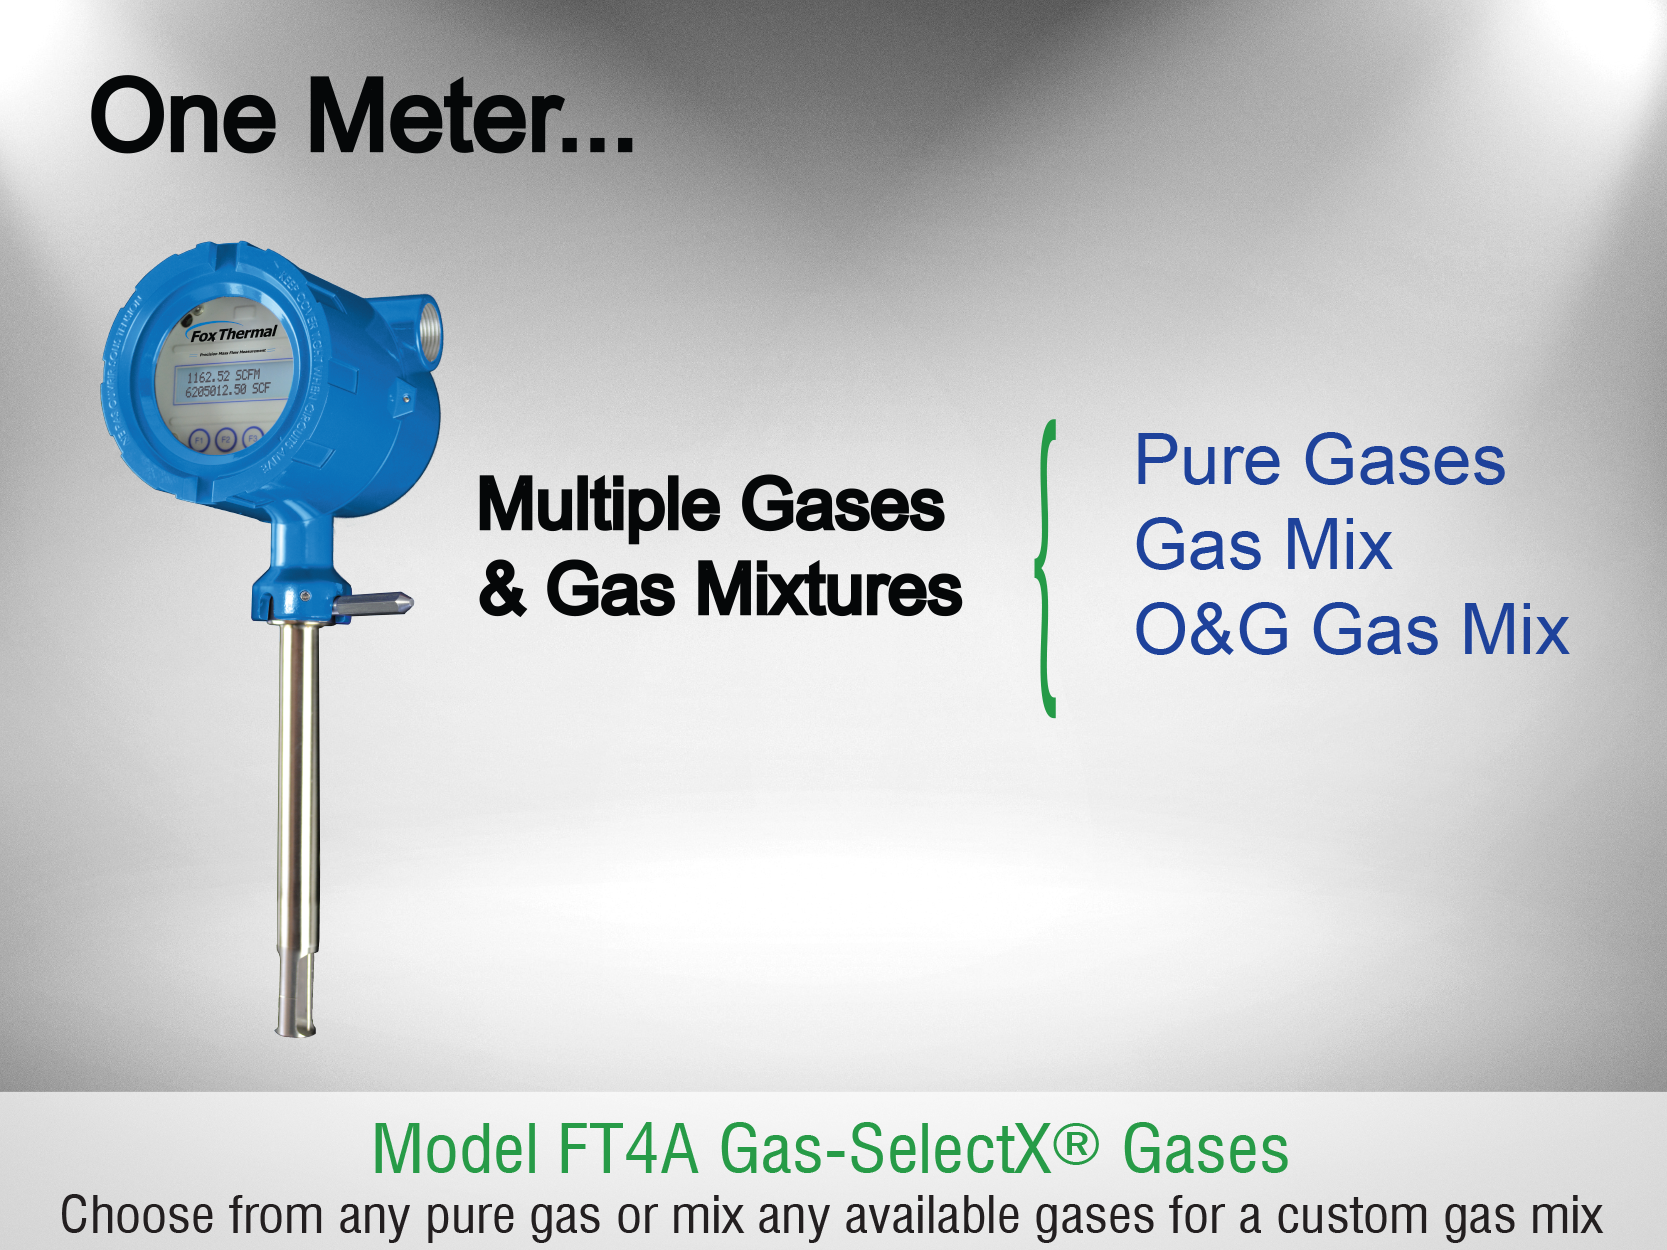 FT4A Expanded Gas-SelectX Gas Menu